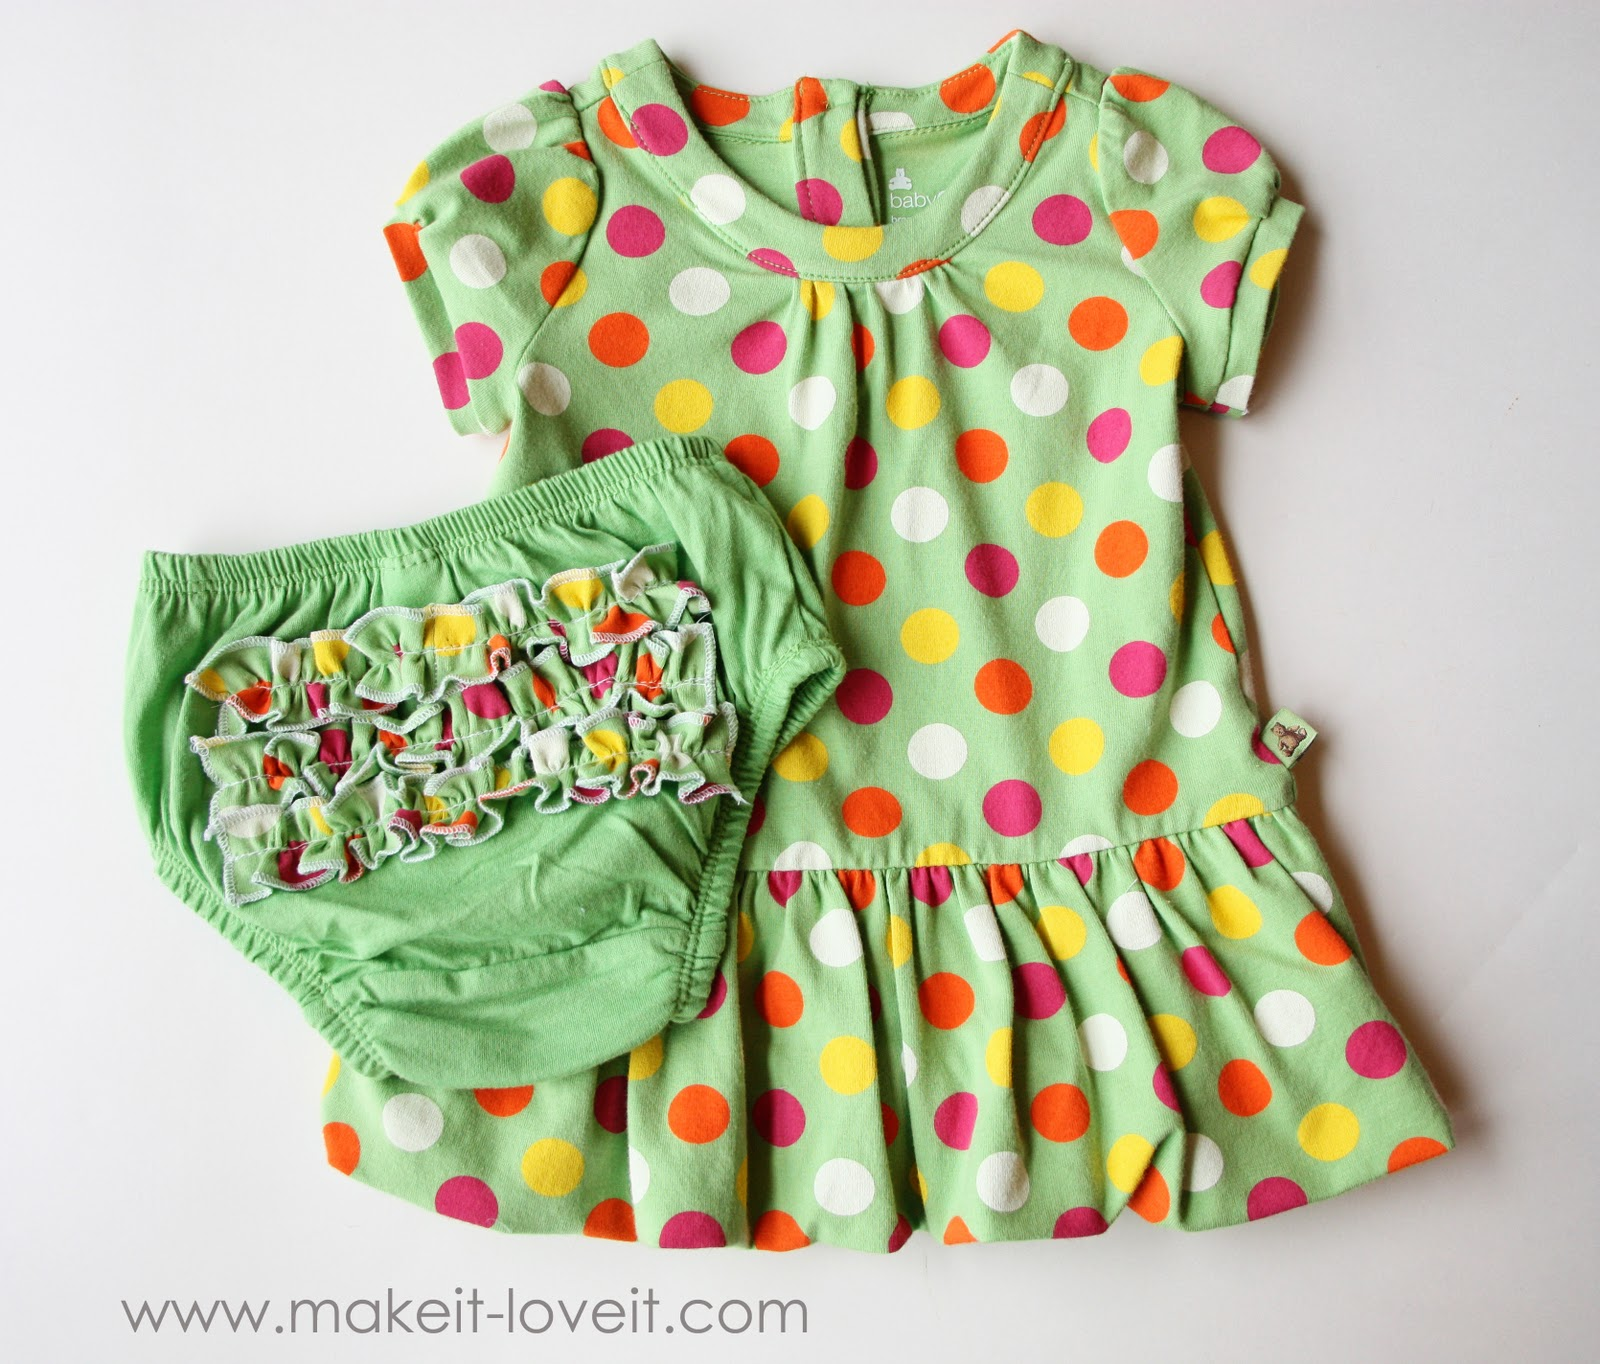 fb88c7641 Altering Baby Clothes: Long Sleeves to Short {Plus Ruffles} – Make ...